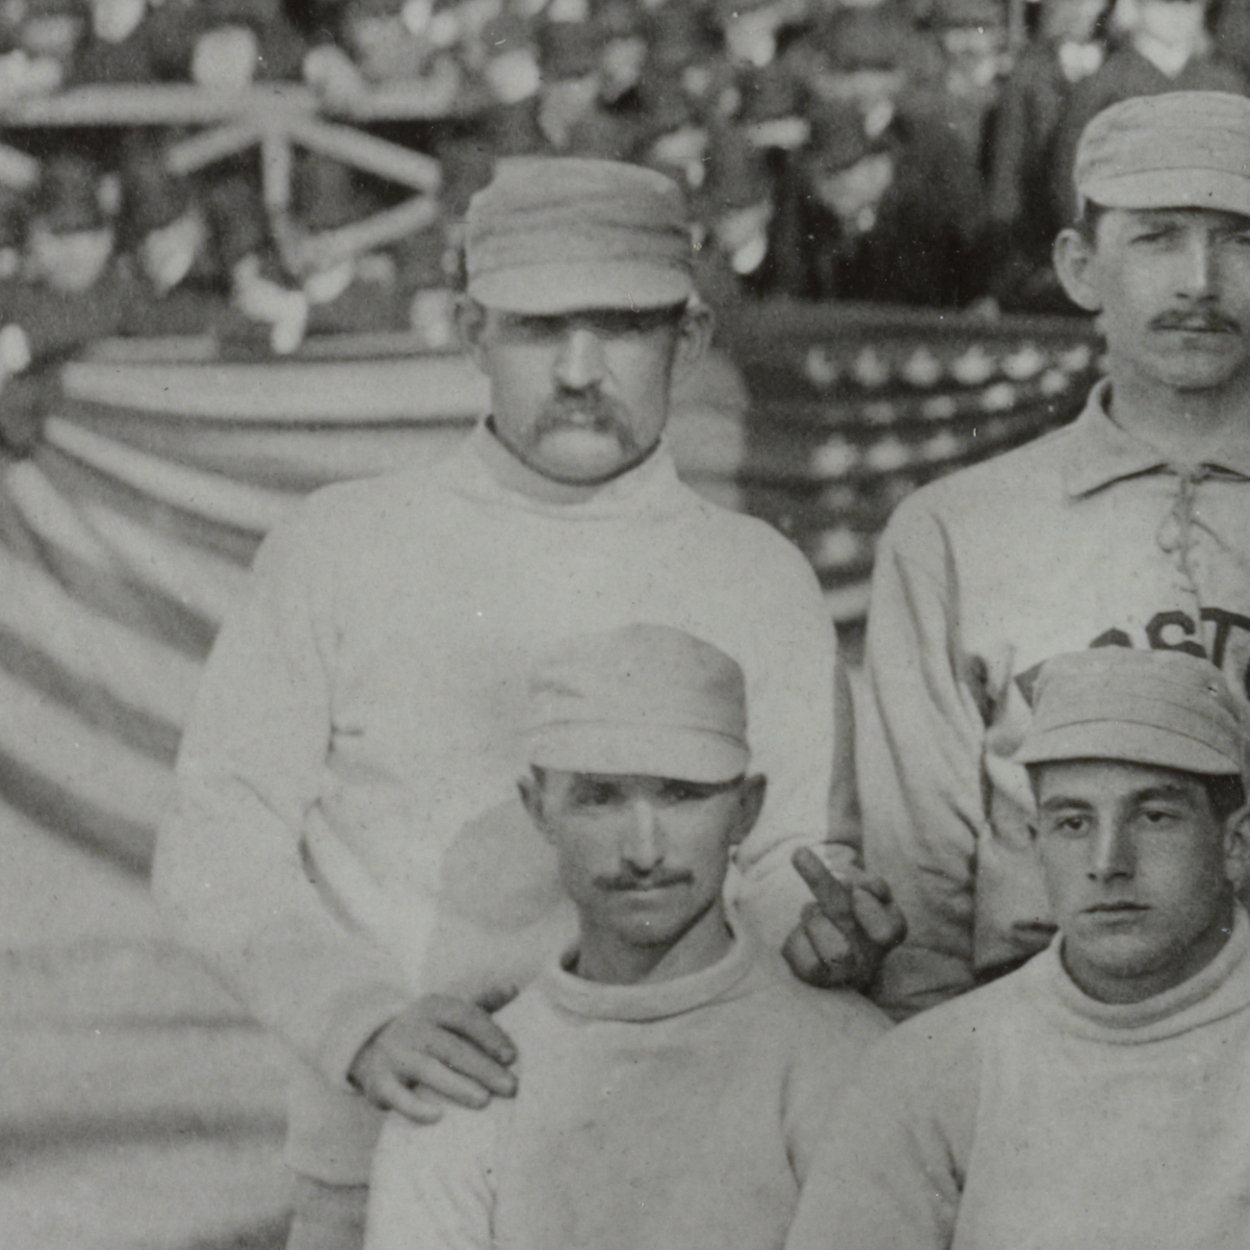 http://upload.wikimedia.org/wikipedia/commons/7/78/Old_Hoss_Radbourn_finger.jpg